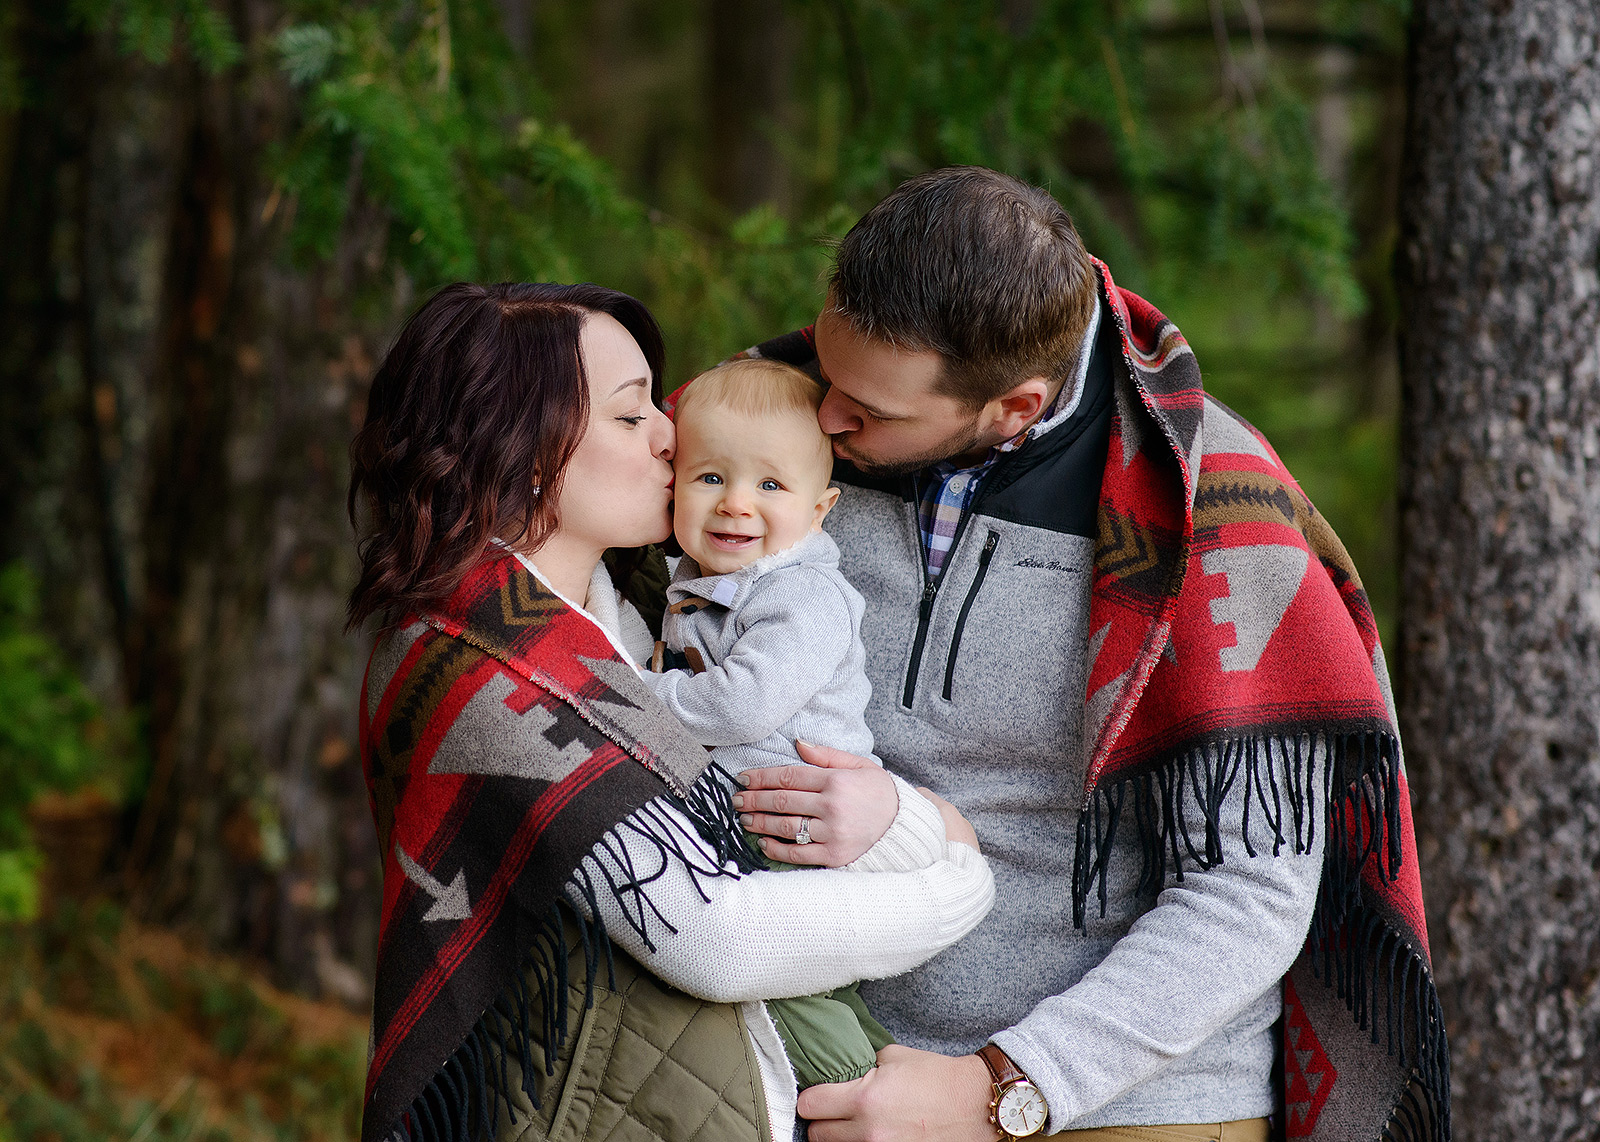 Family Photo with Southwest Print Blanket in Pollock Pines Forest